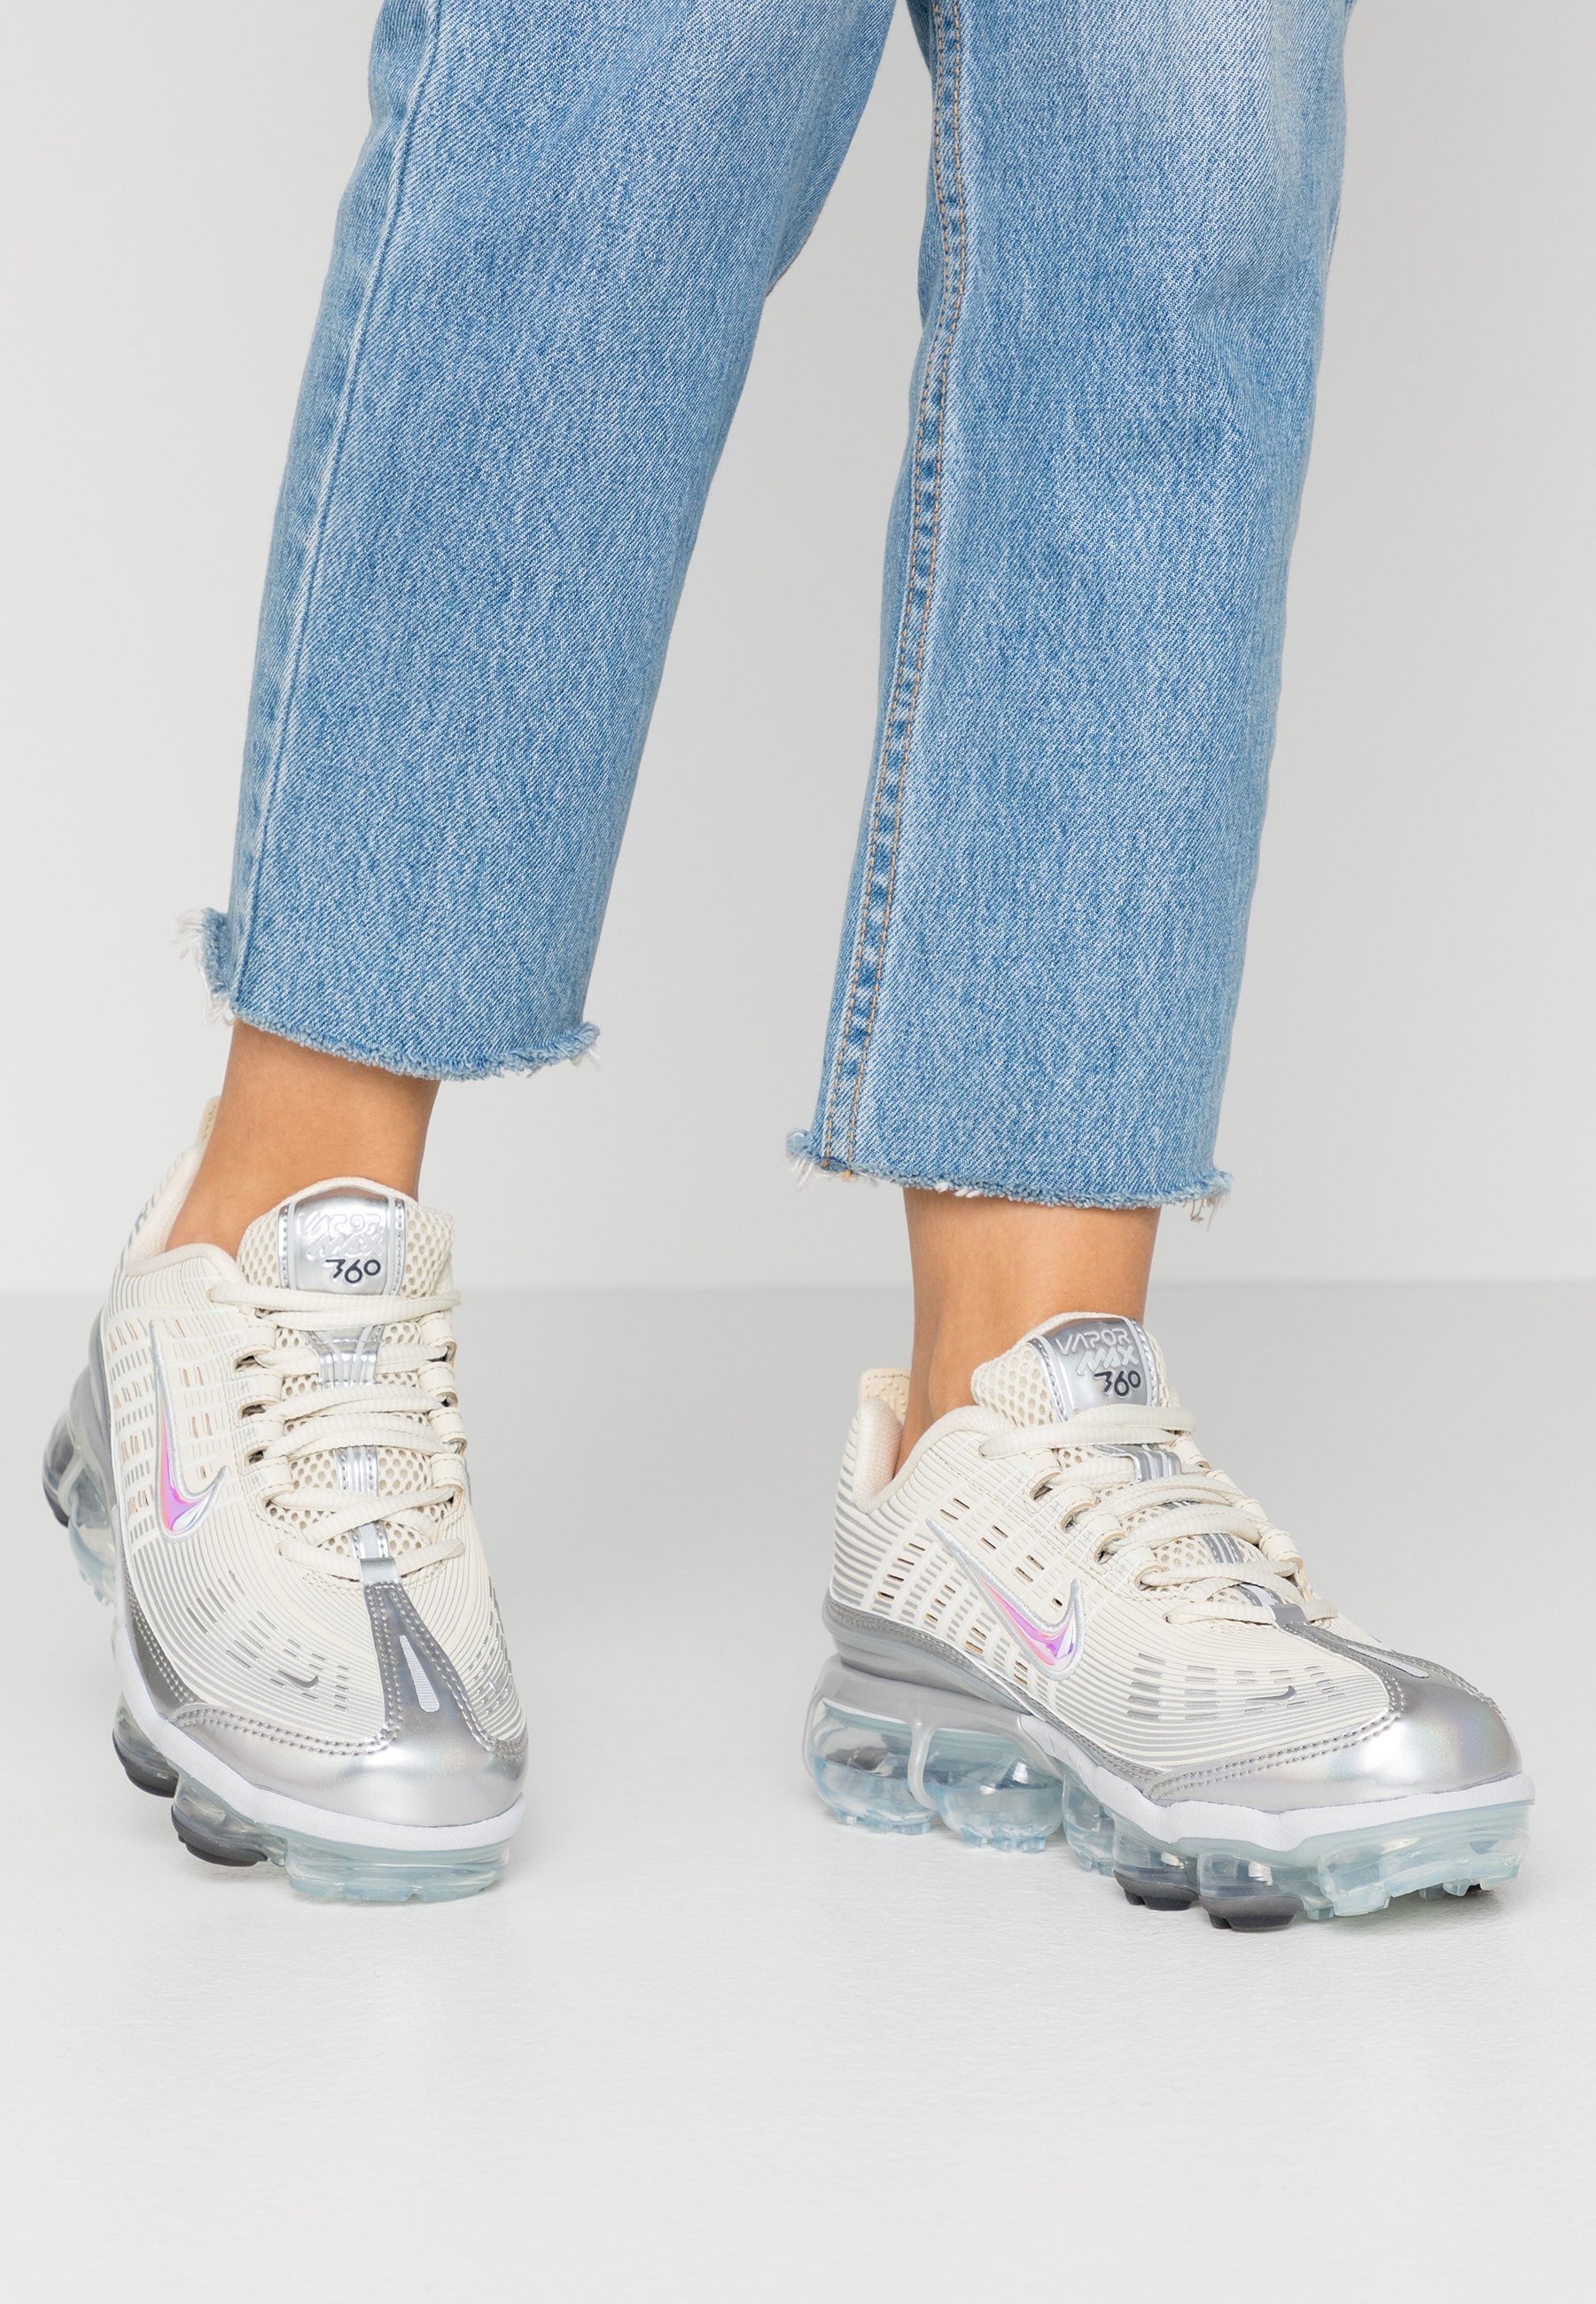 NIKE AIR VAPORMAX 360 Baskets basses fossilmetallic silverblacksummit white